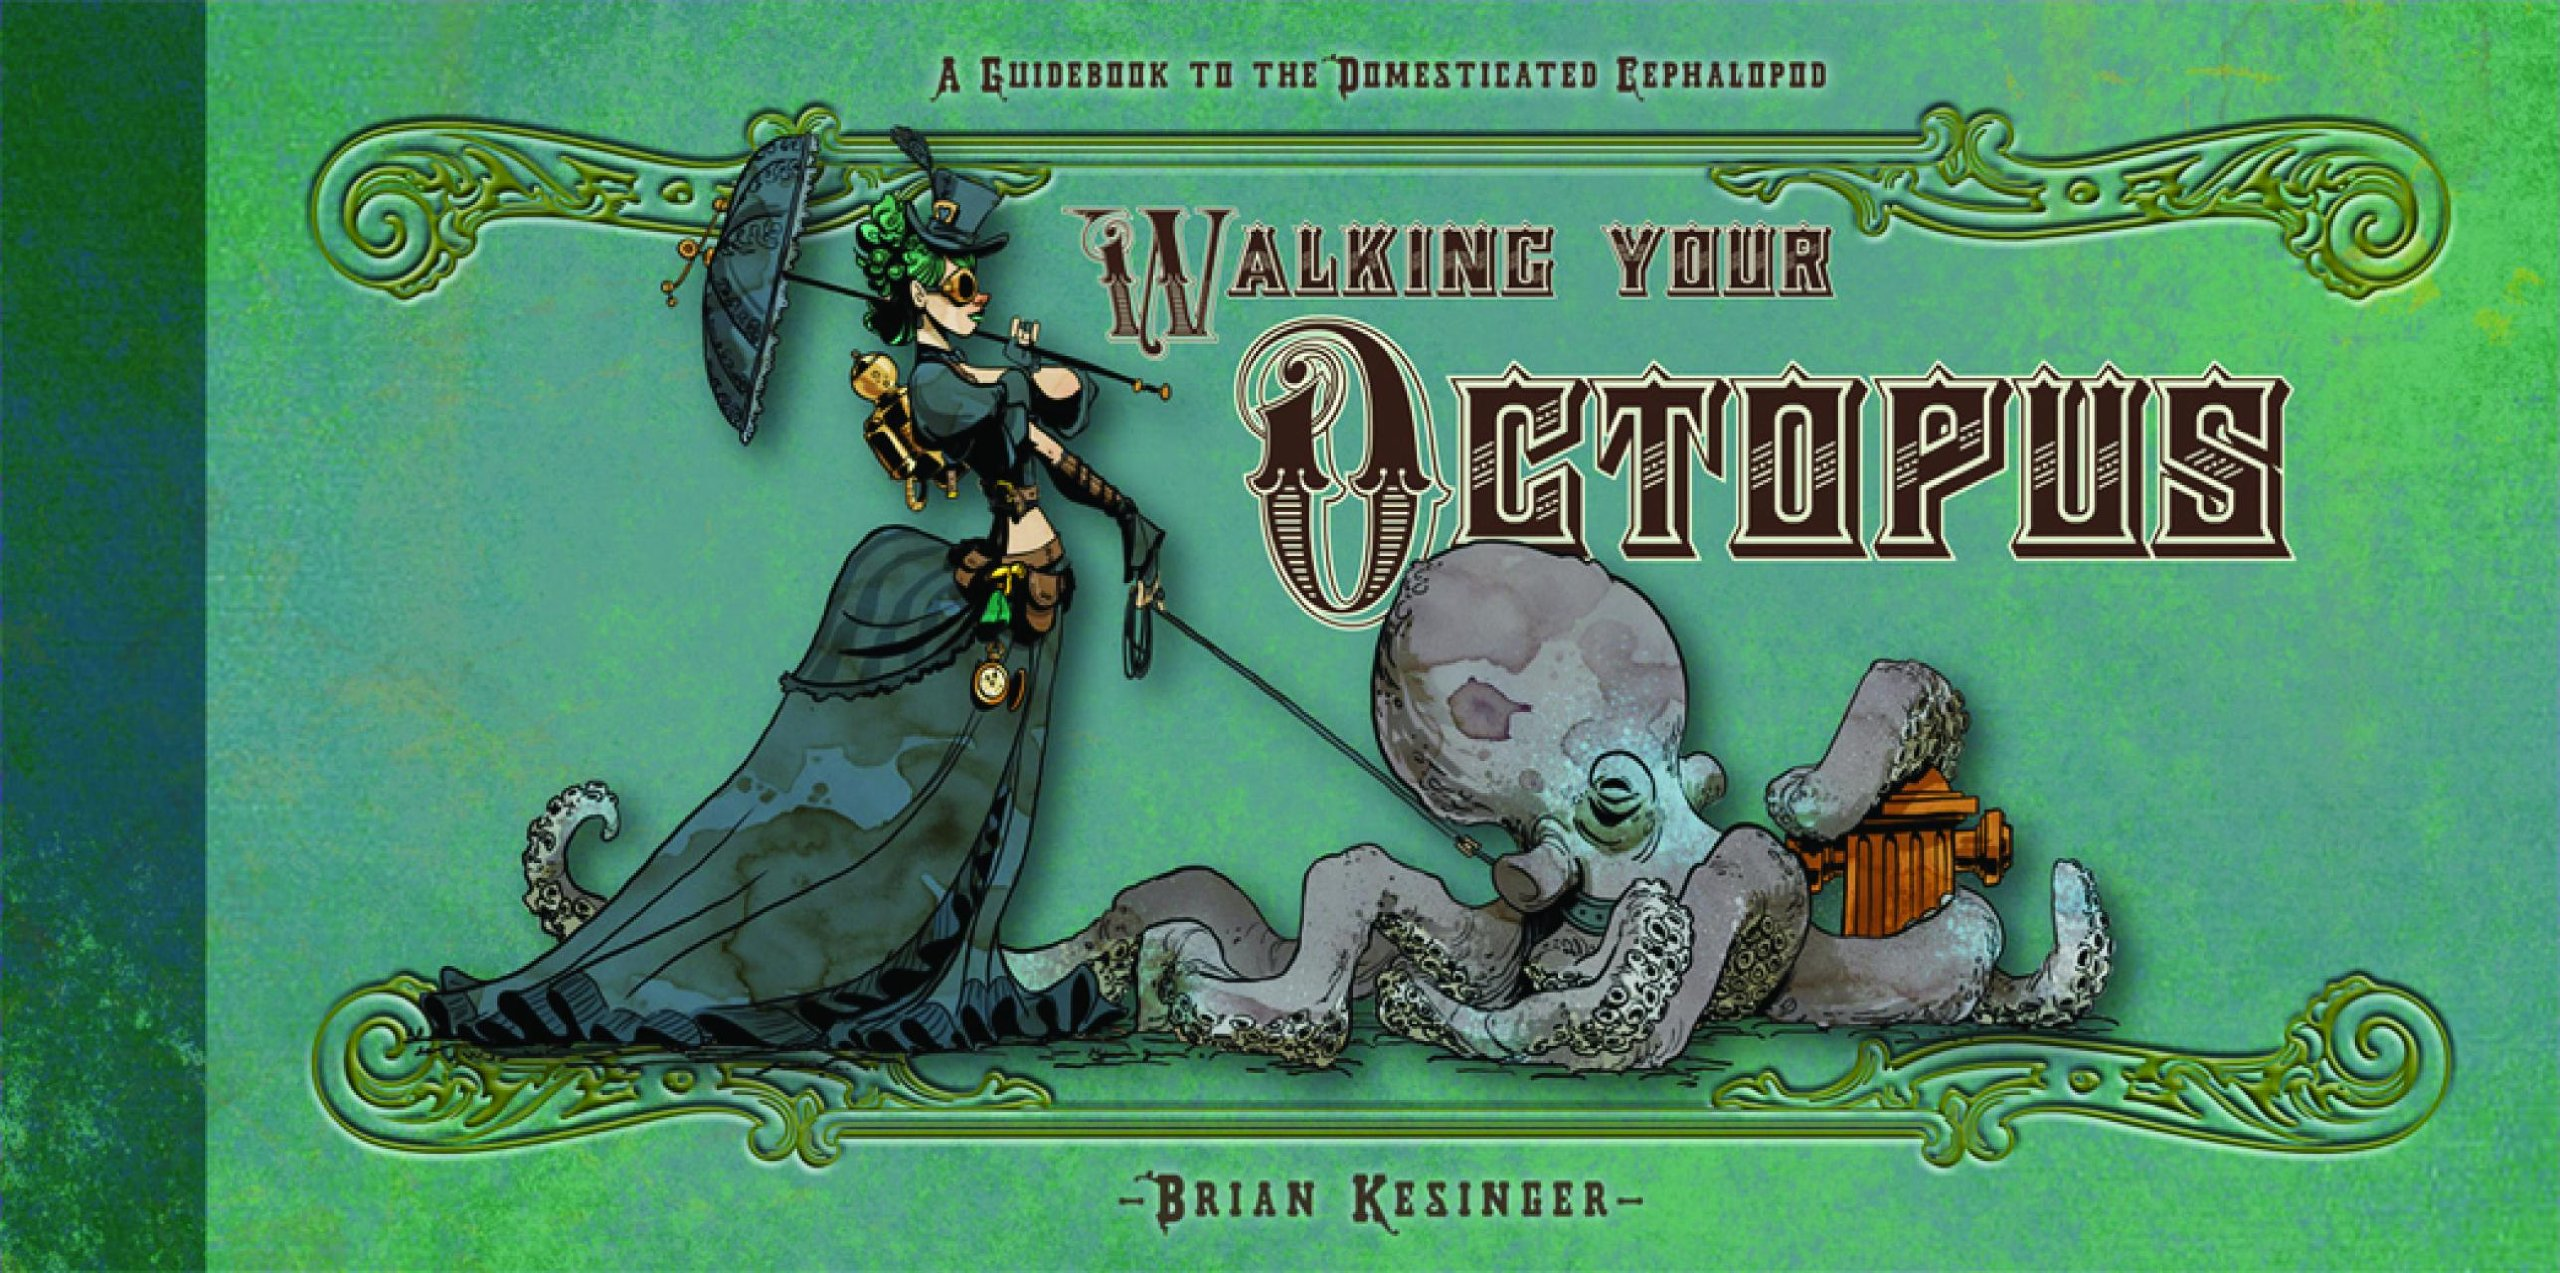 Walking Your Octopus